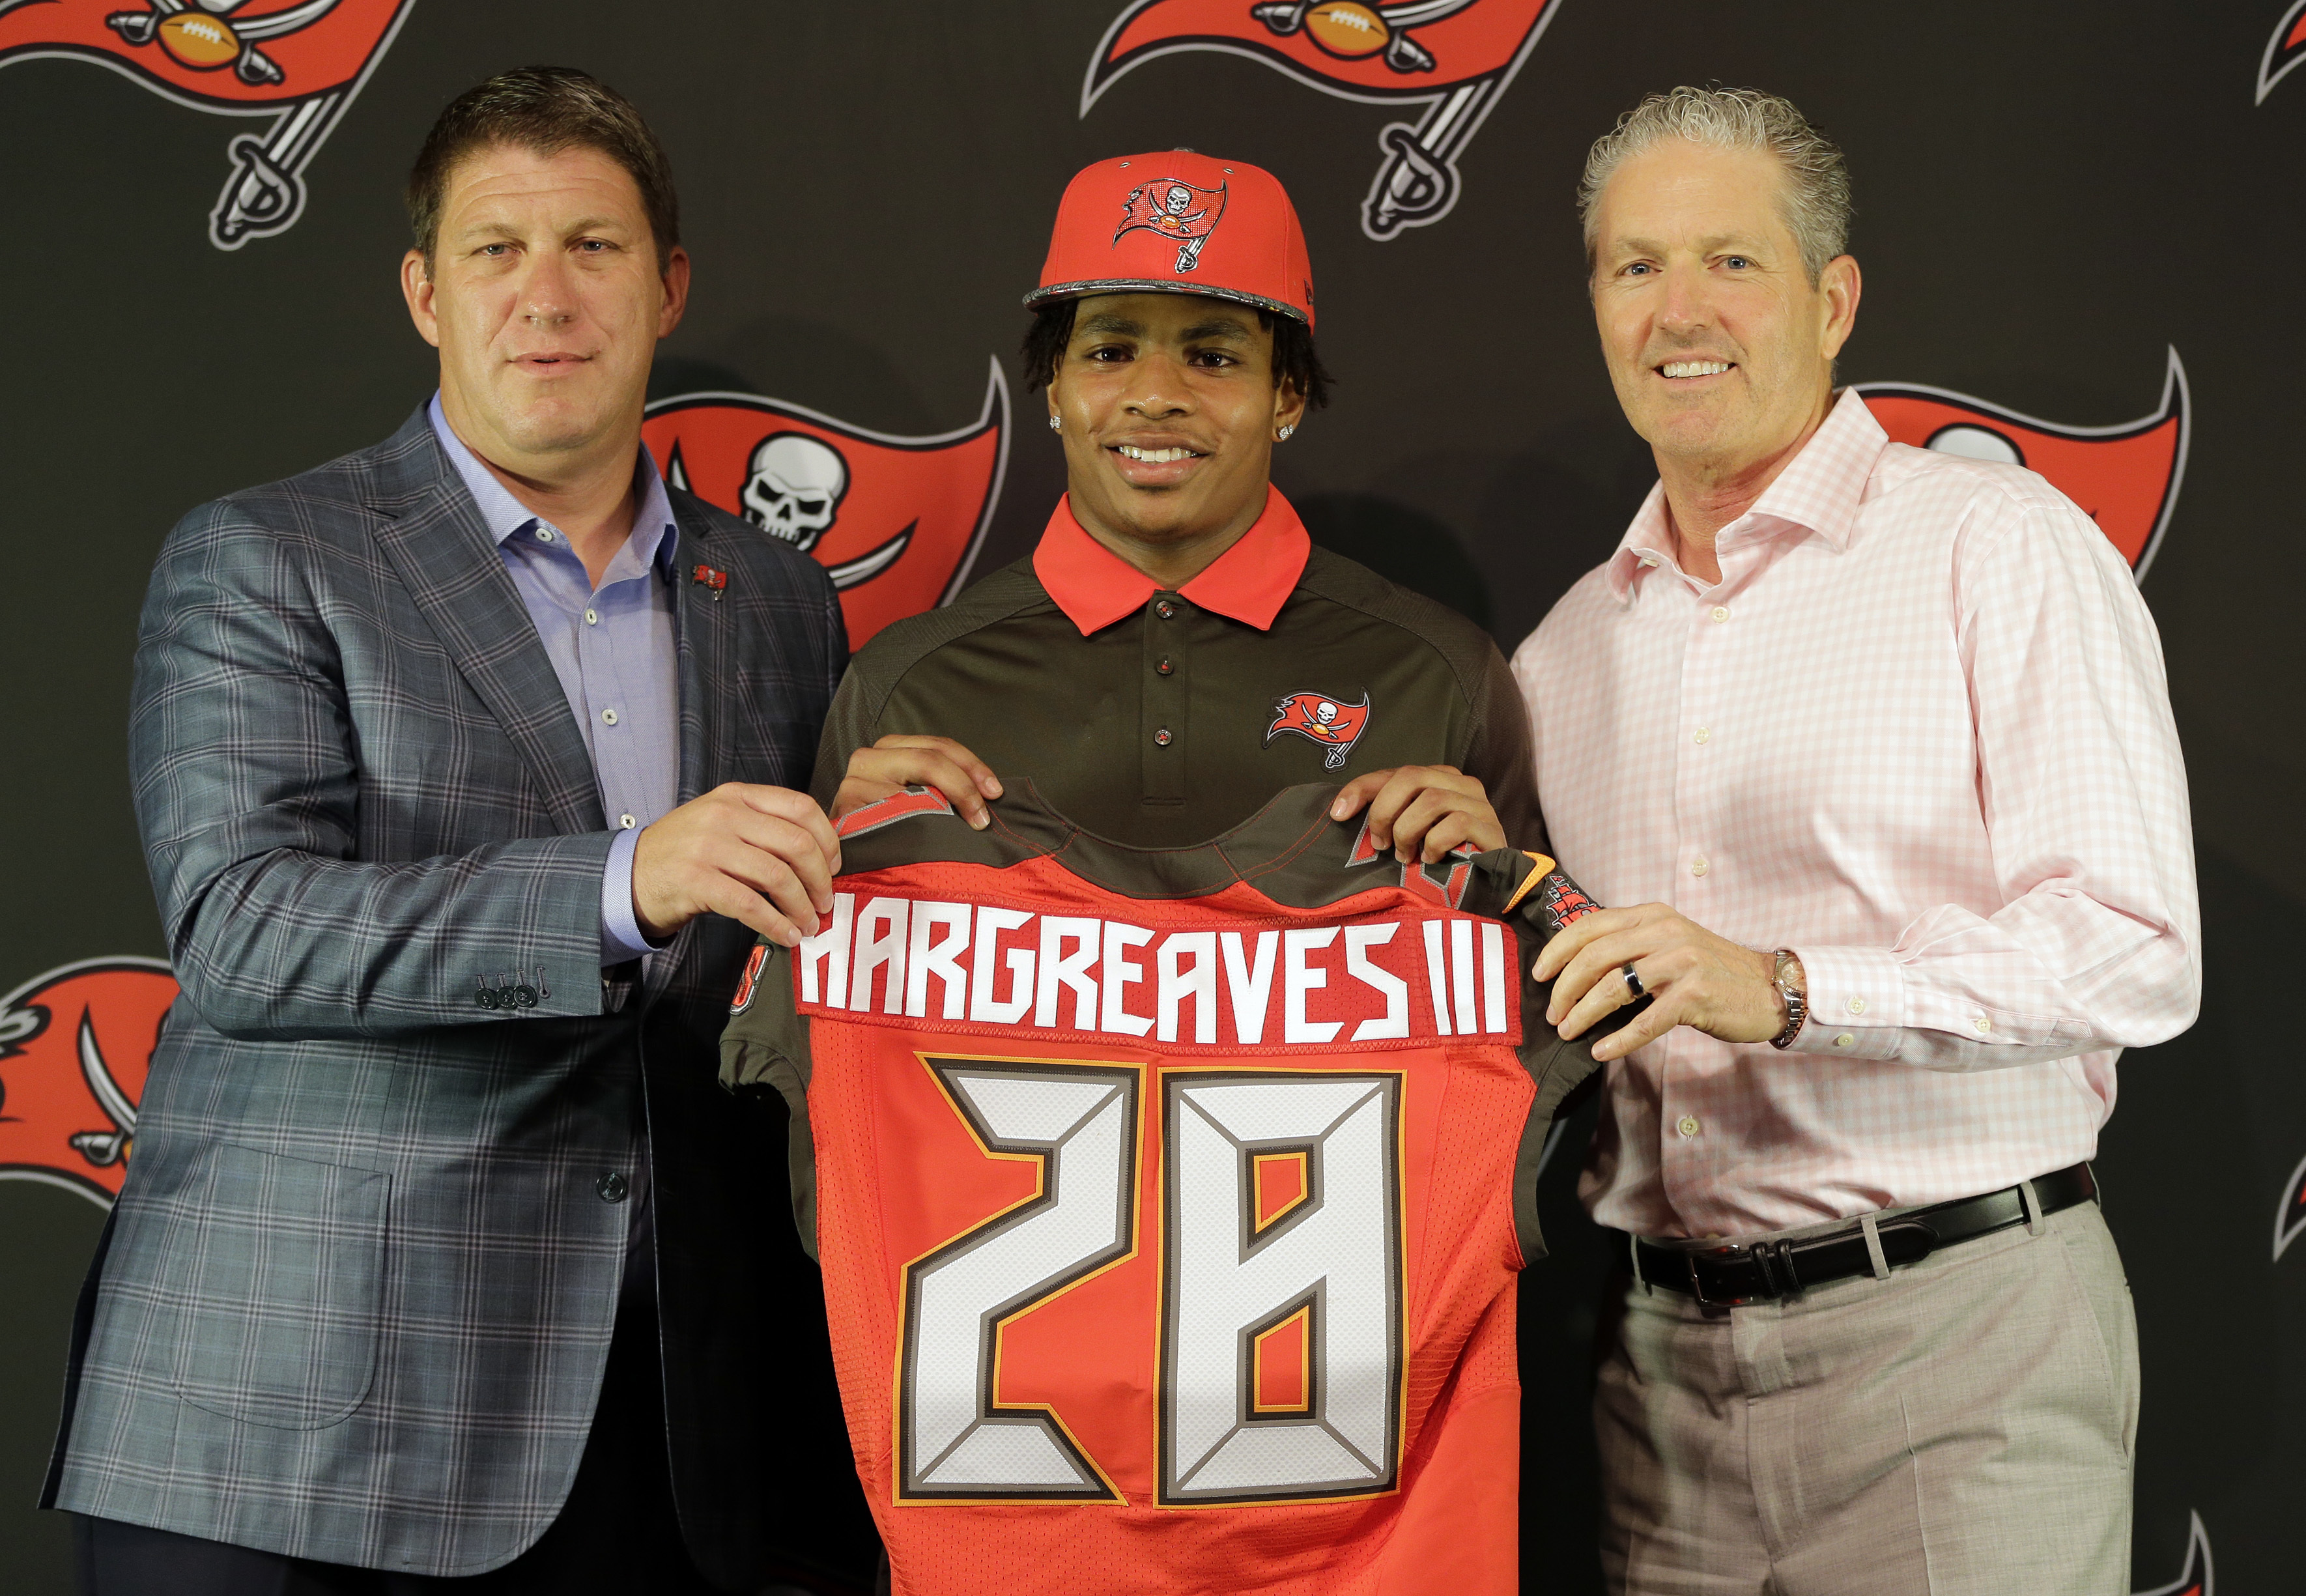 Tampa Bay Buccaneers first-round draft pick Vernon Hargreaves, center, poses with general manager Jason Licht, left, and head coach Dirk Koetter, right, during a news conference Friday, April 29, 2016, in Tampa, Fla. Hargreaves, formally of the University